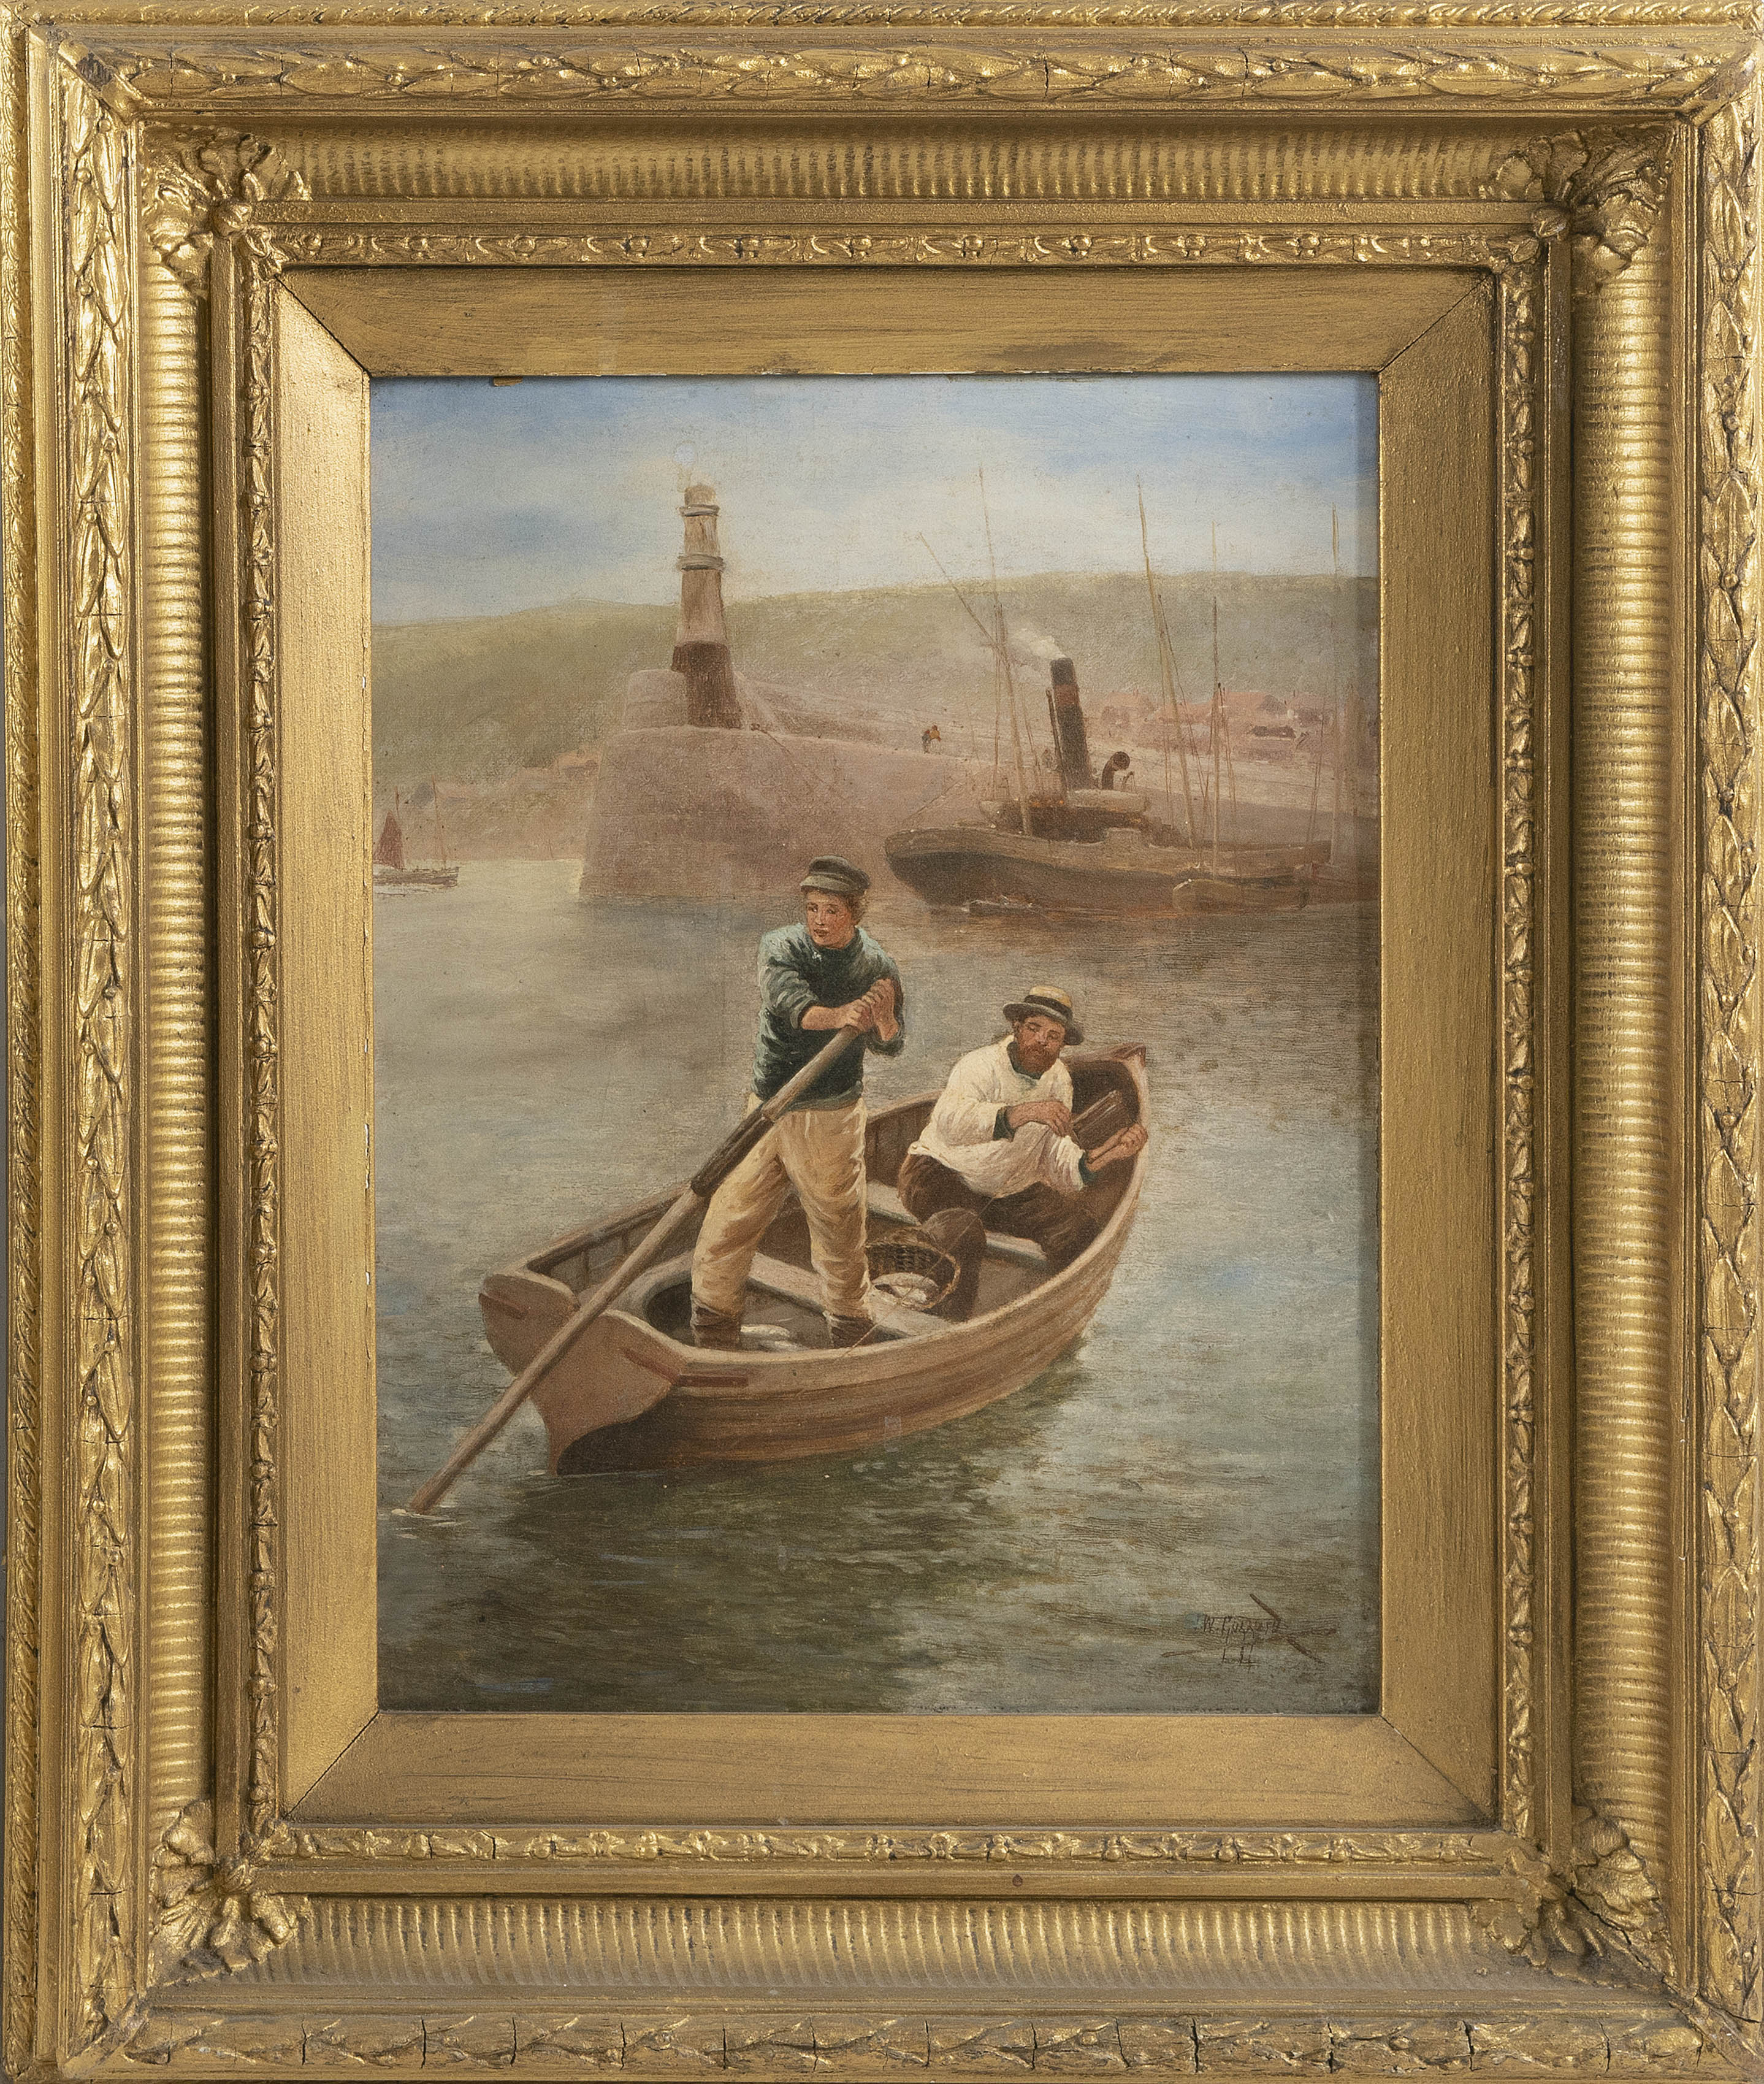 JAMES WALTER GOZZARD (England, 1862-1939), Fisherman in a dory., Oil on canvas, 16